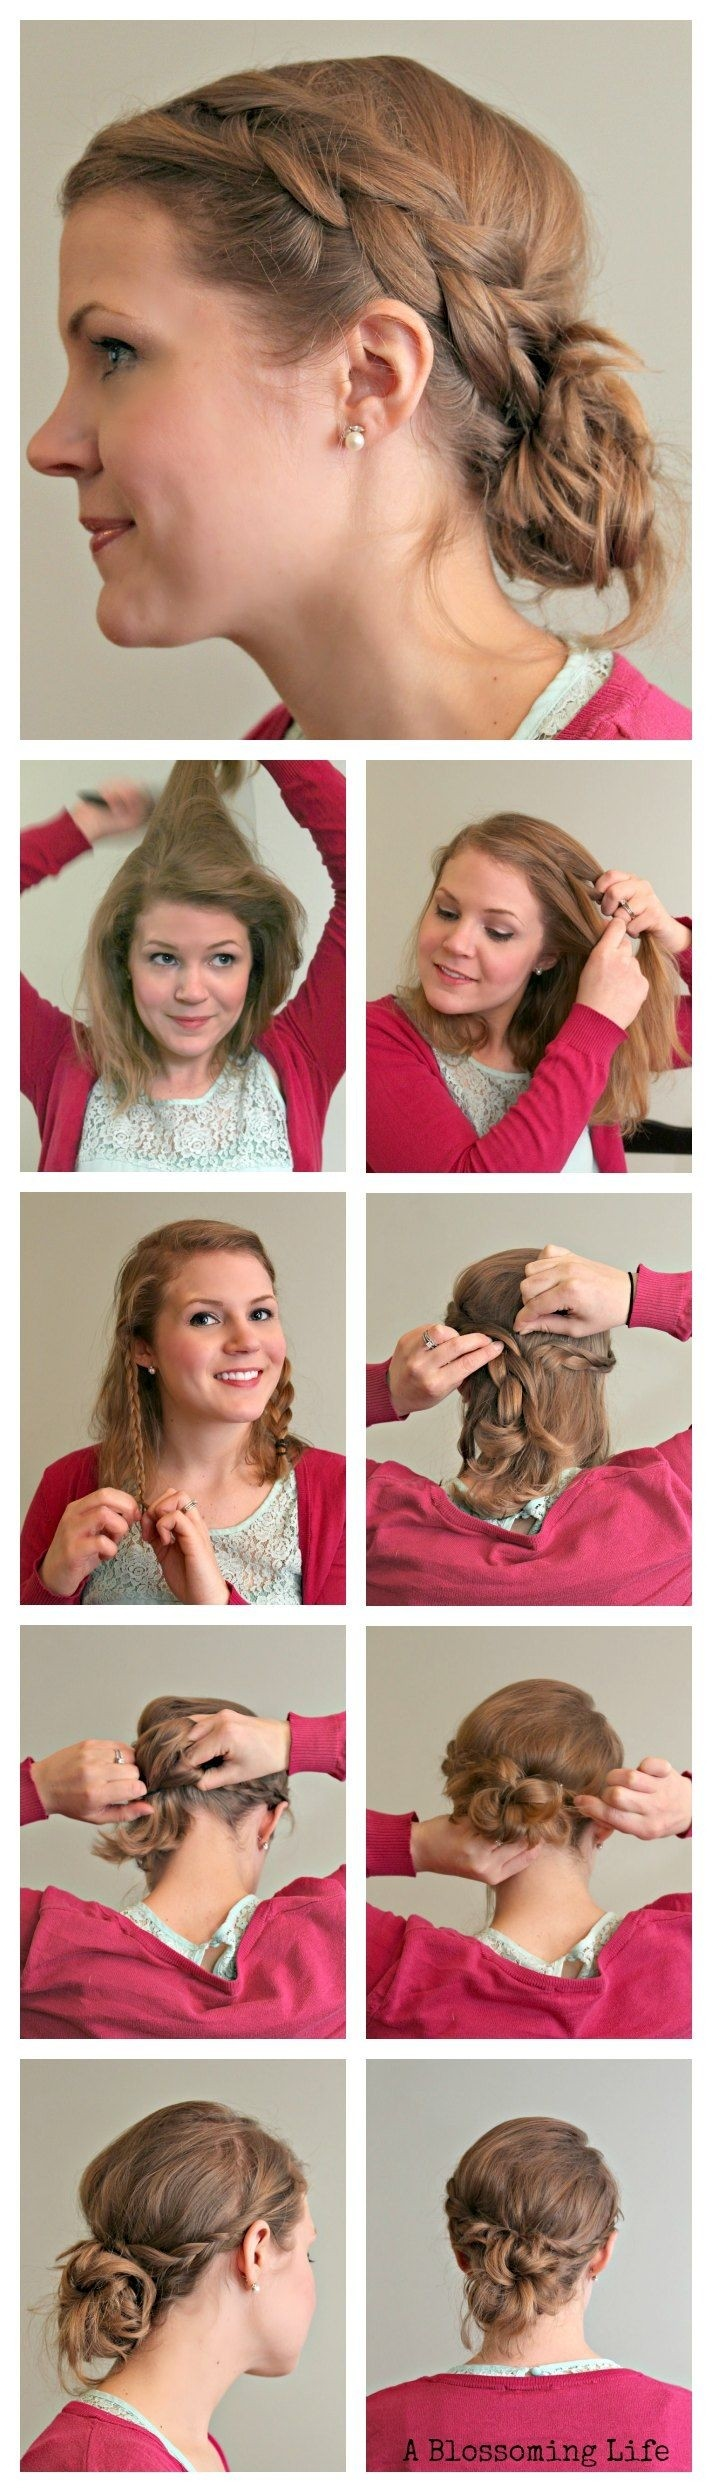 2014 Prom Frisuren: Locker geflochtenes Messy Bun Tutorial